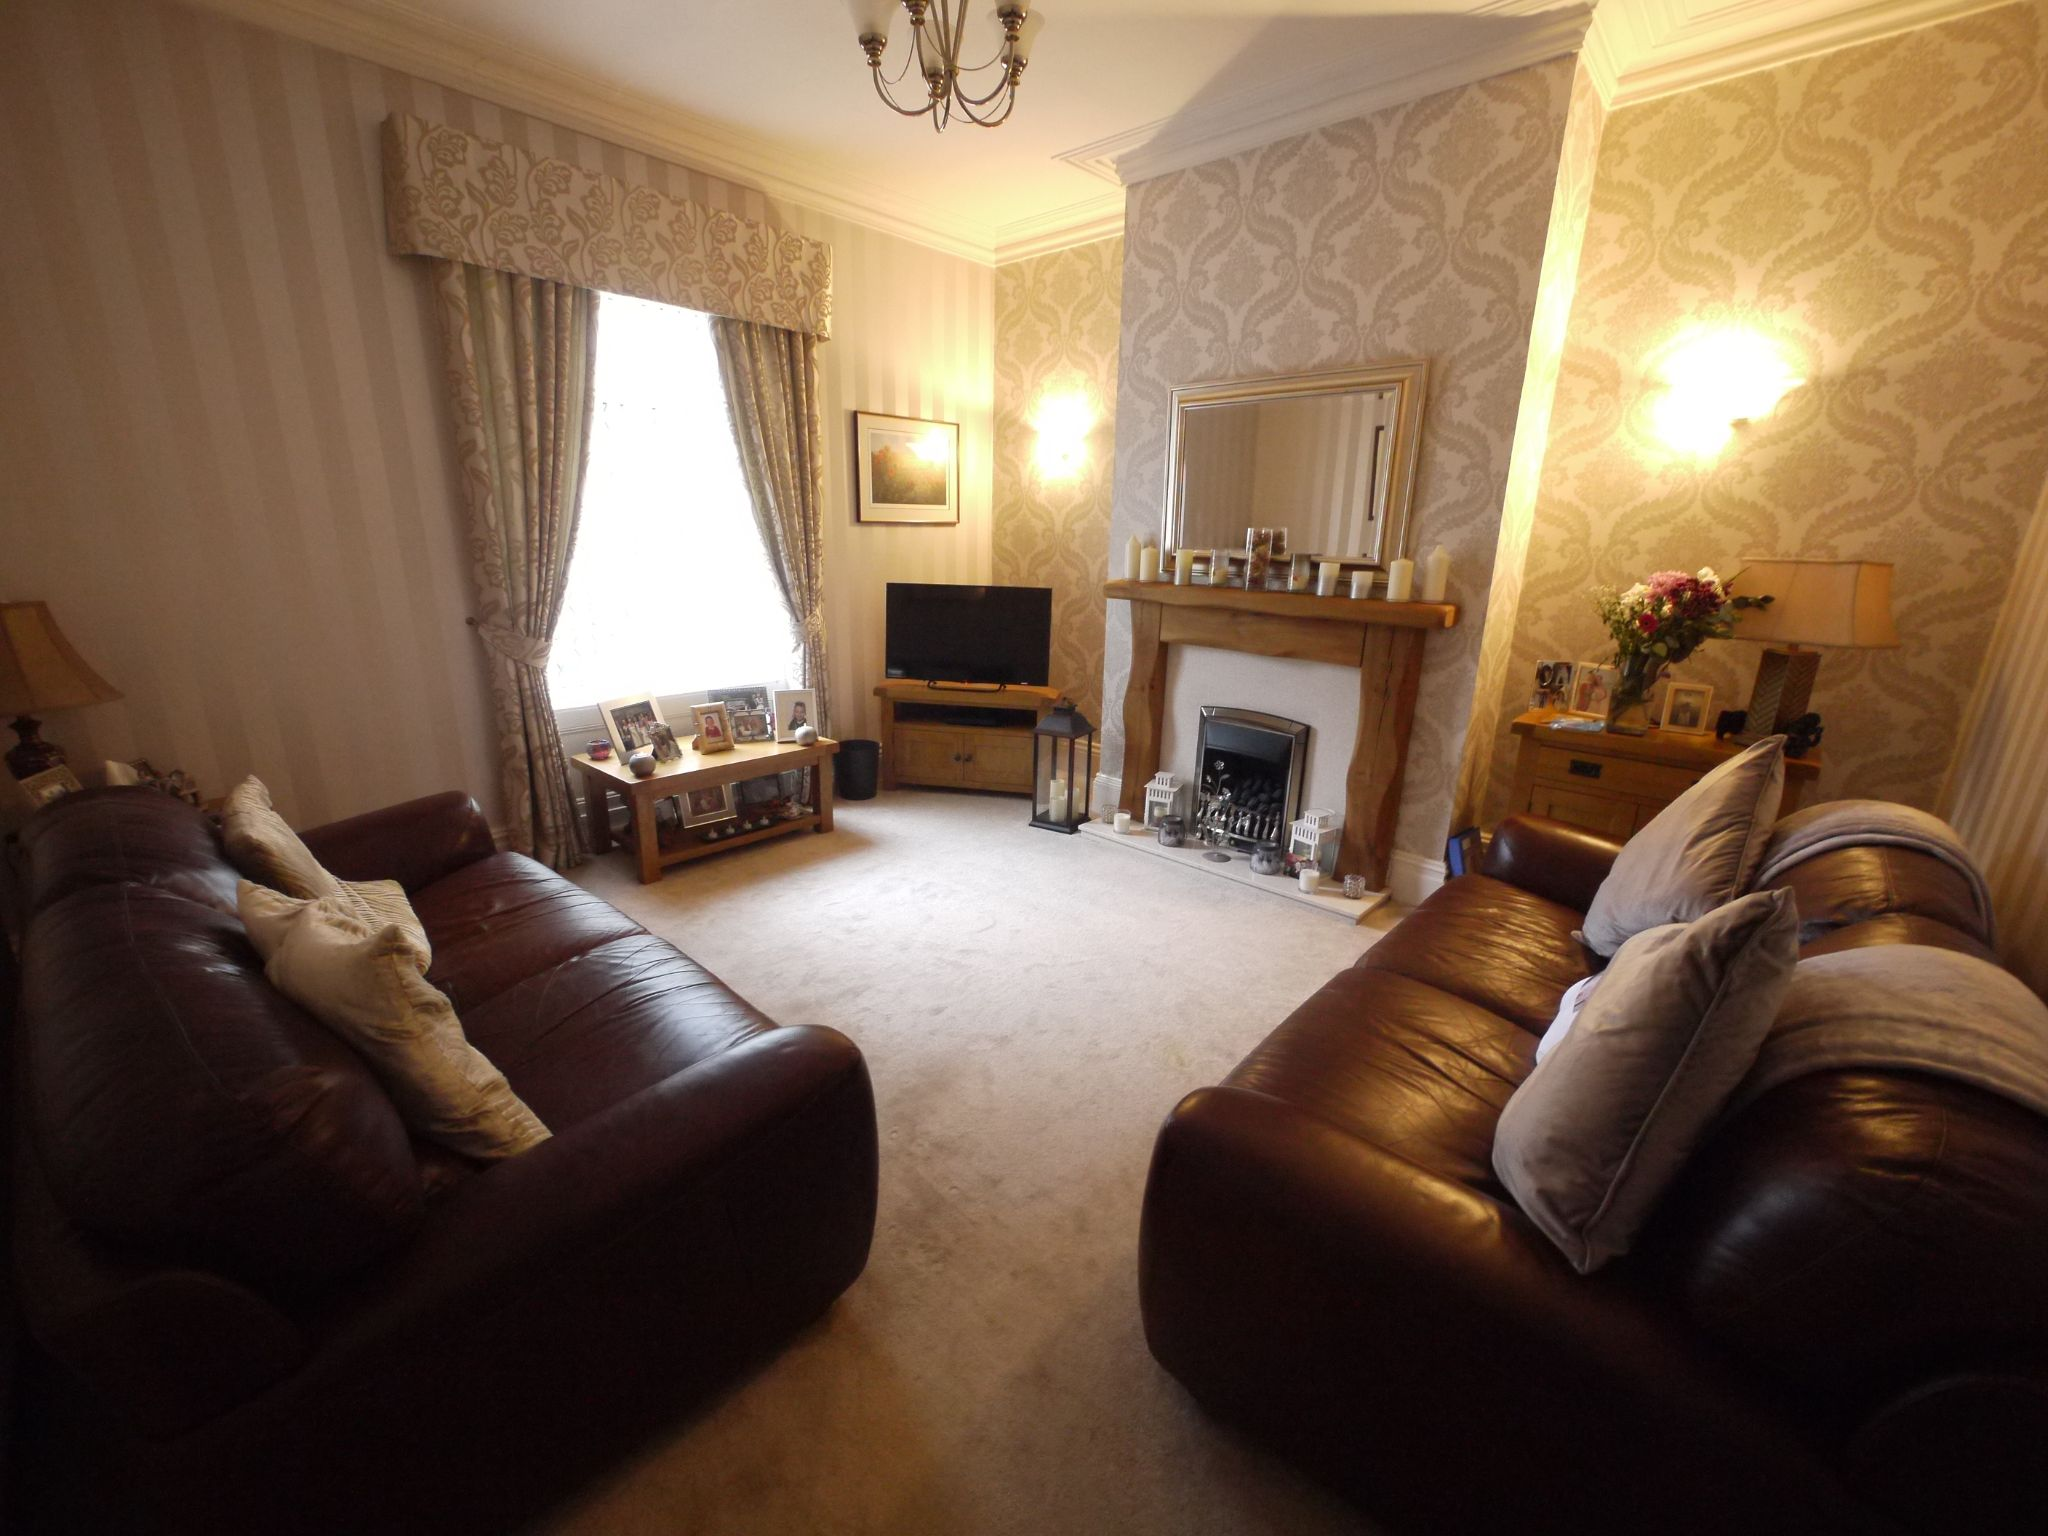 3 bedroom semi-detached house For Sale in Calderdale - Photograph 5.